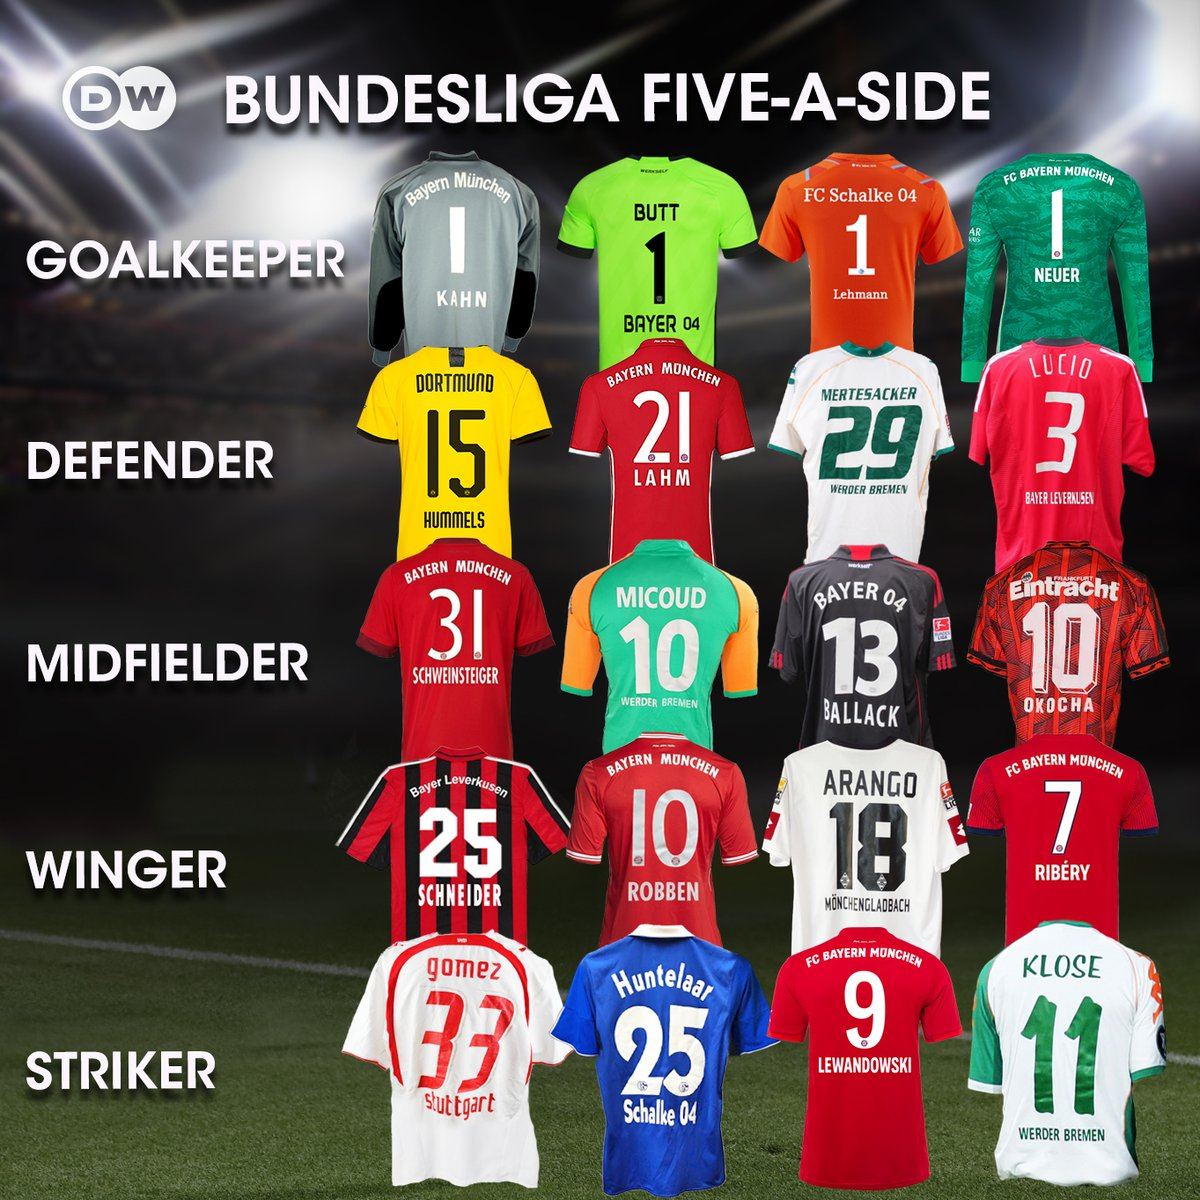 You know the drill. Your all-time Bundesliga five-a-side team, go.